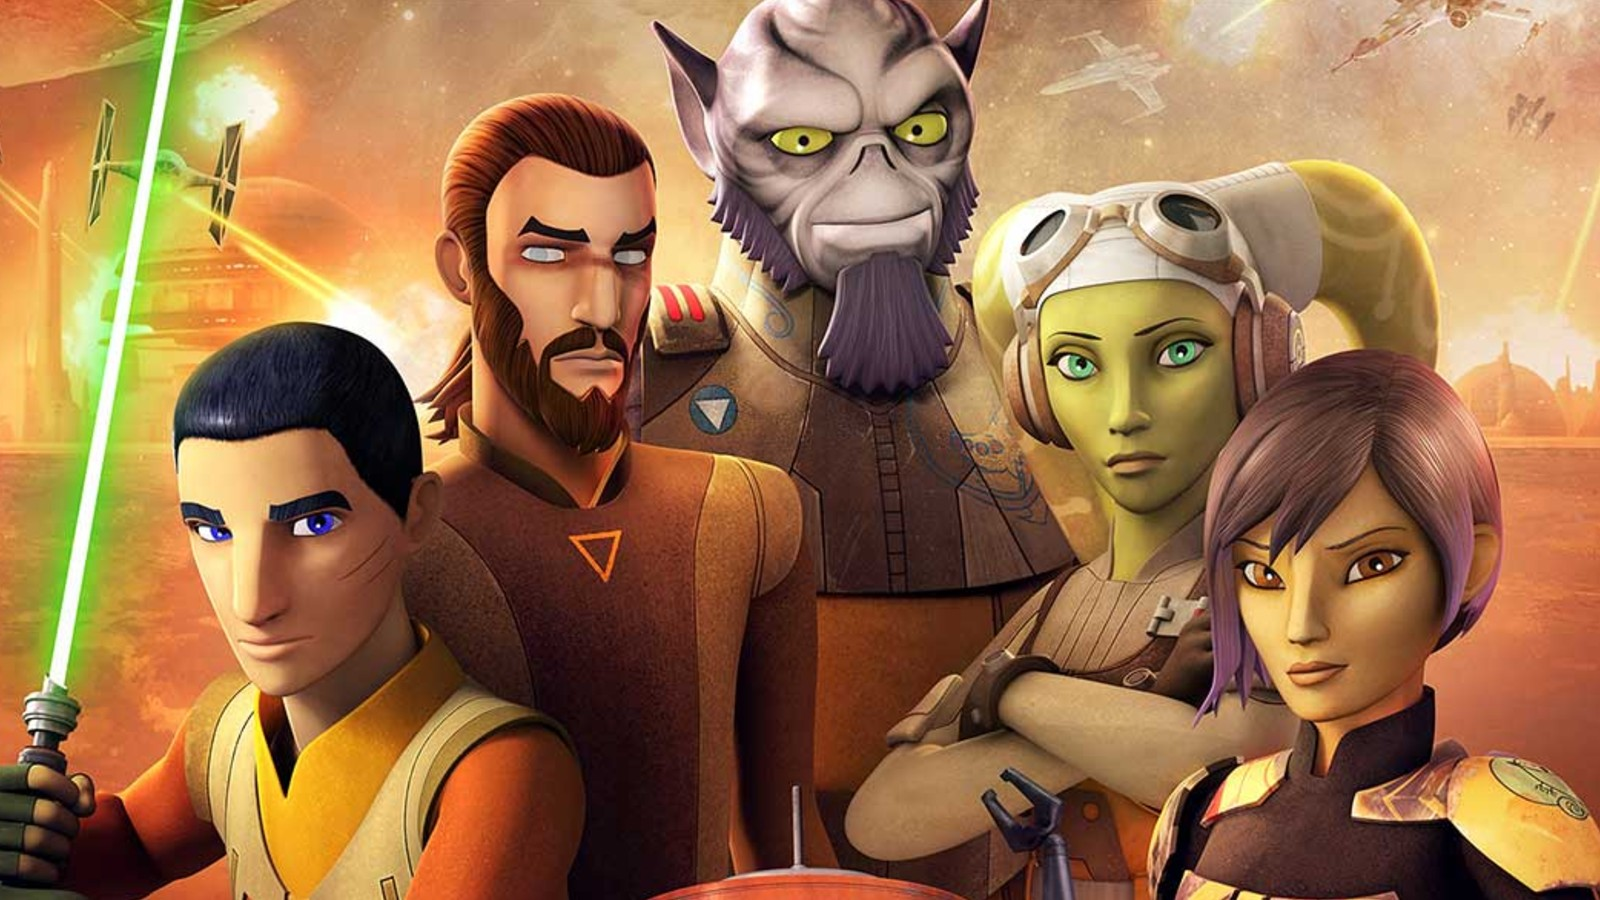 Star Wars Rebels final season connects to mandalorian